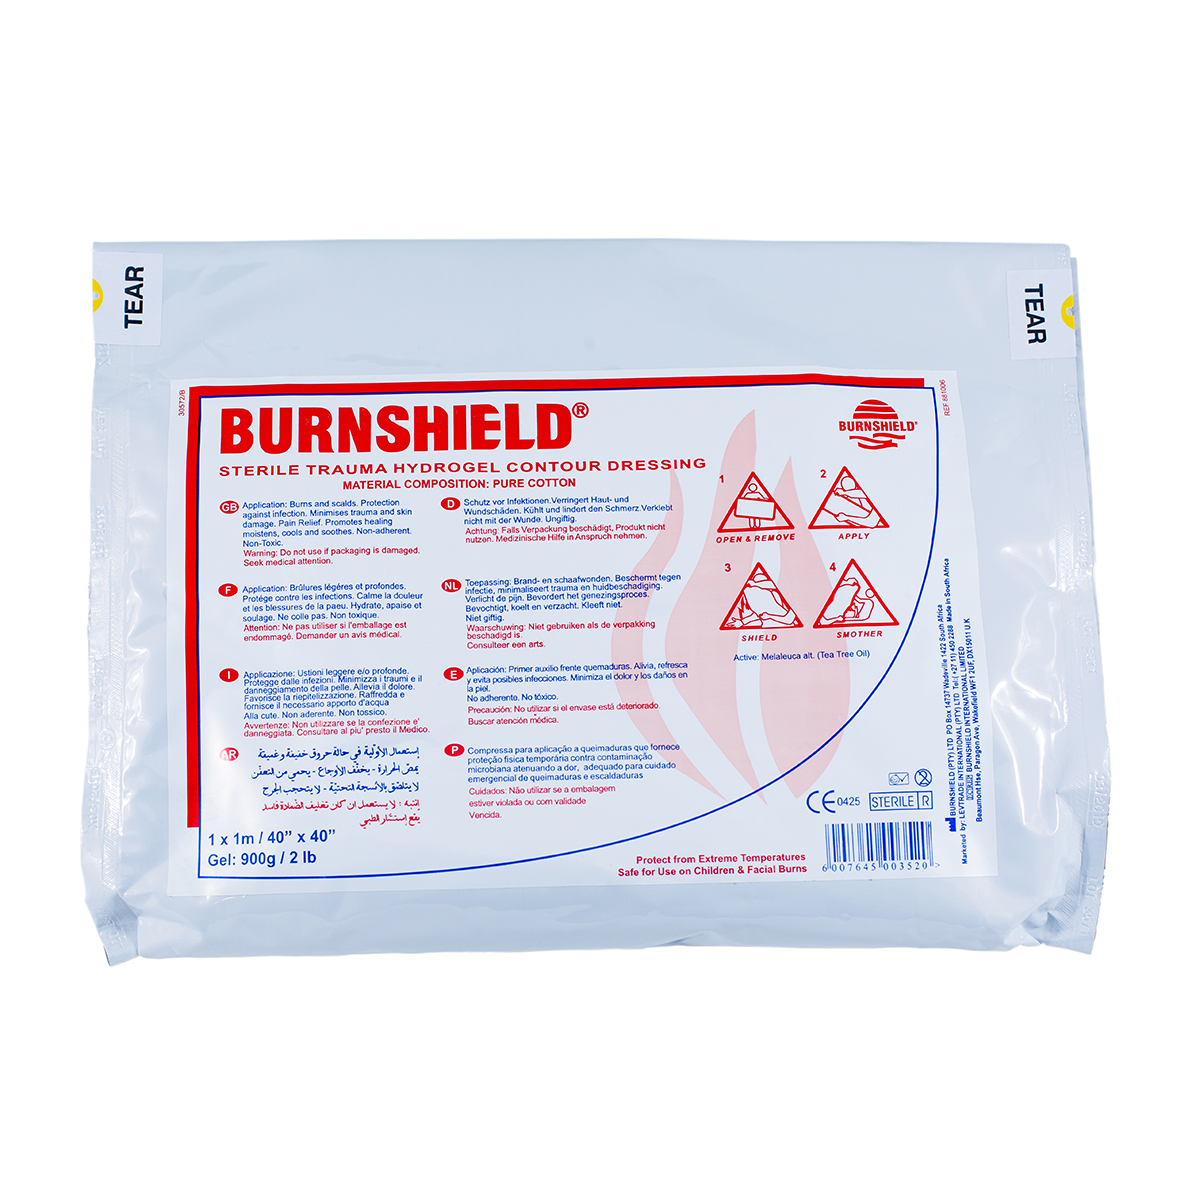 1m x 1m Half Body Burnshield® Contour Dressing